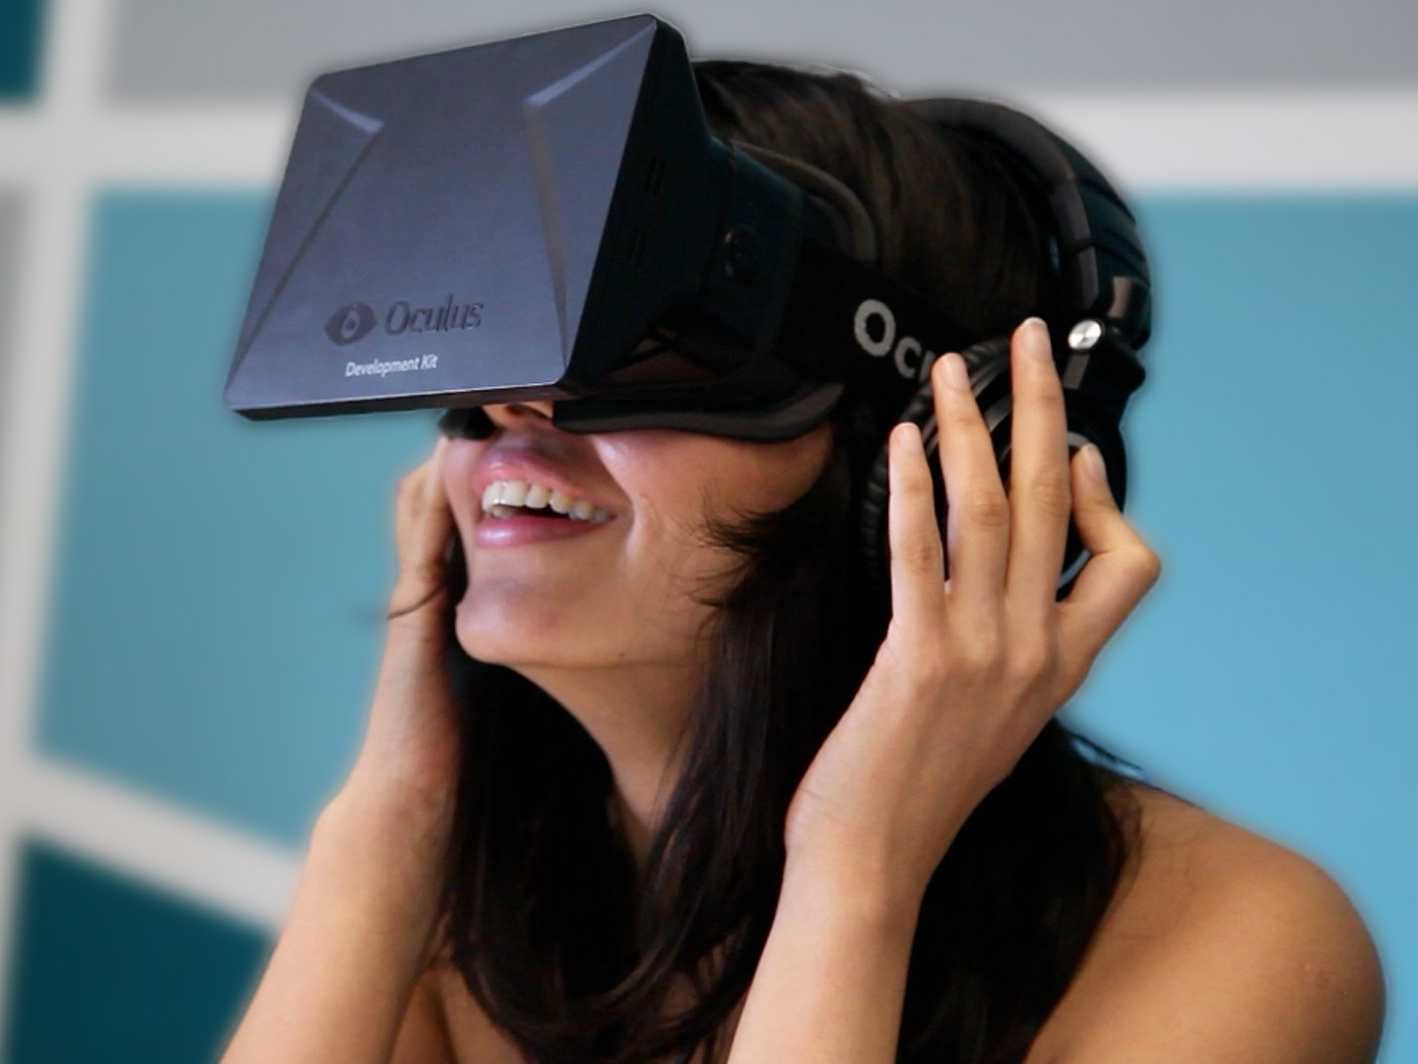 Watch movies on Oculus Rift DK2